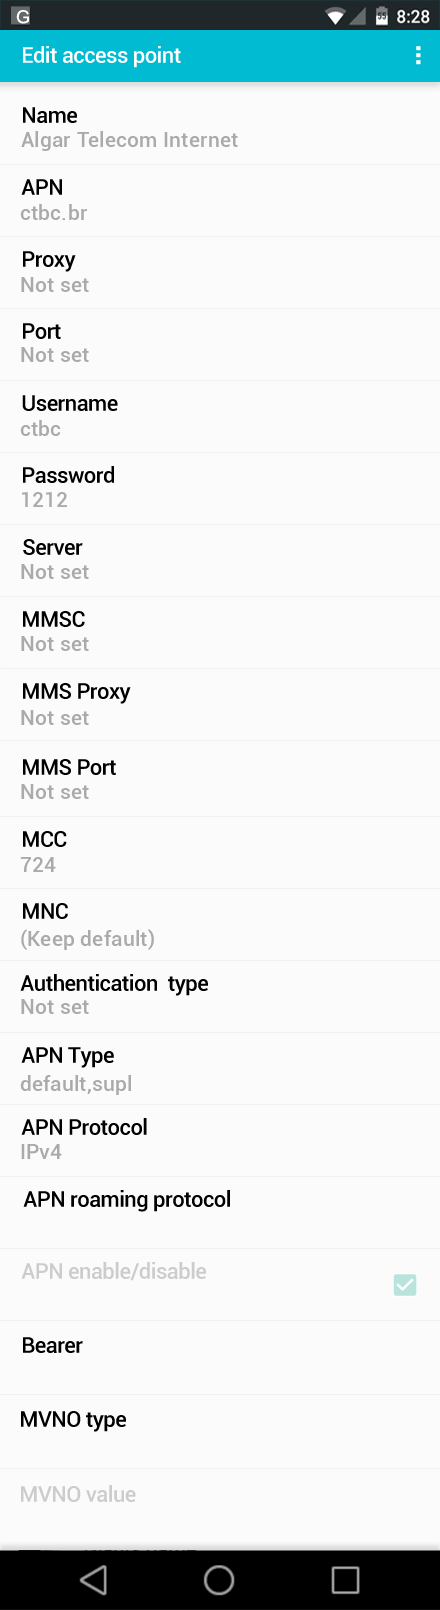 Algar Telecom Internet APN settings for Android screenshot